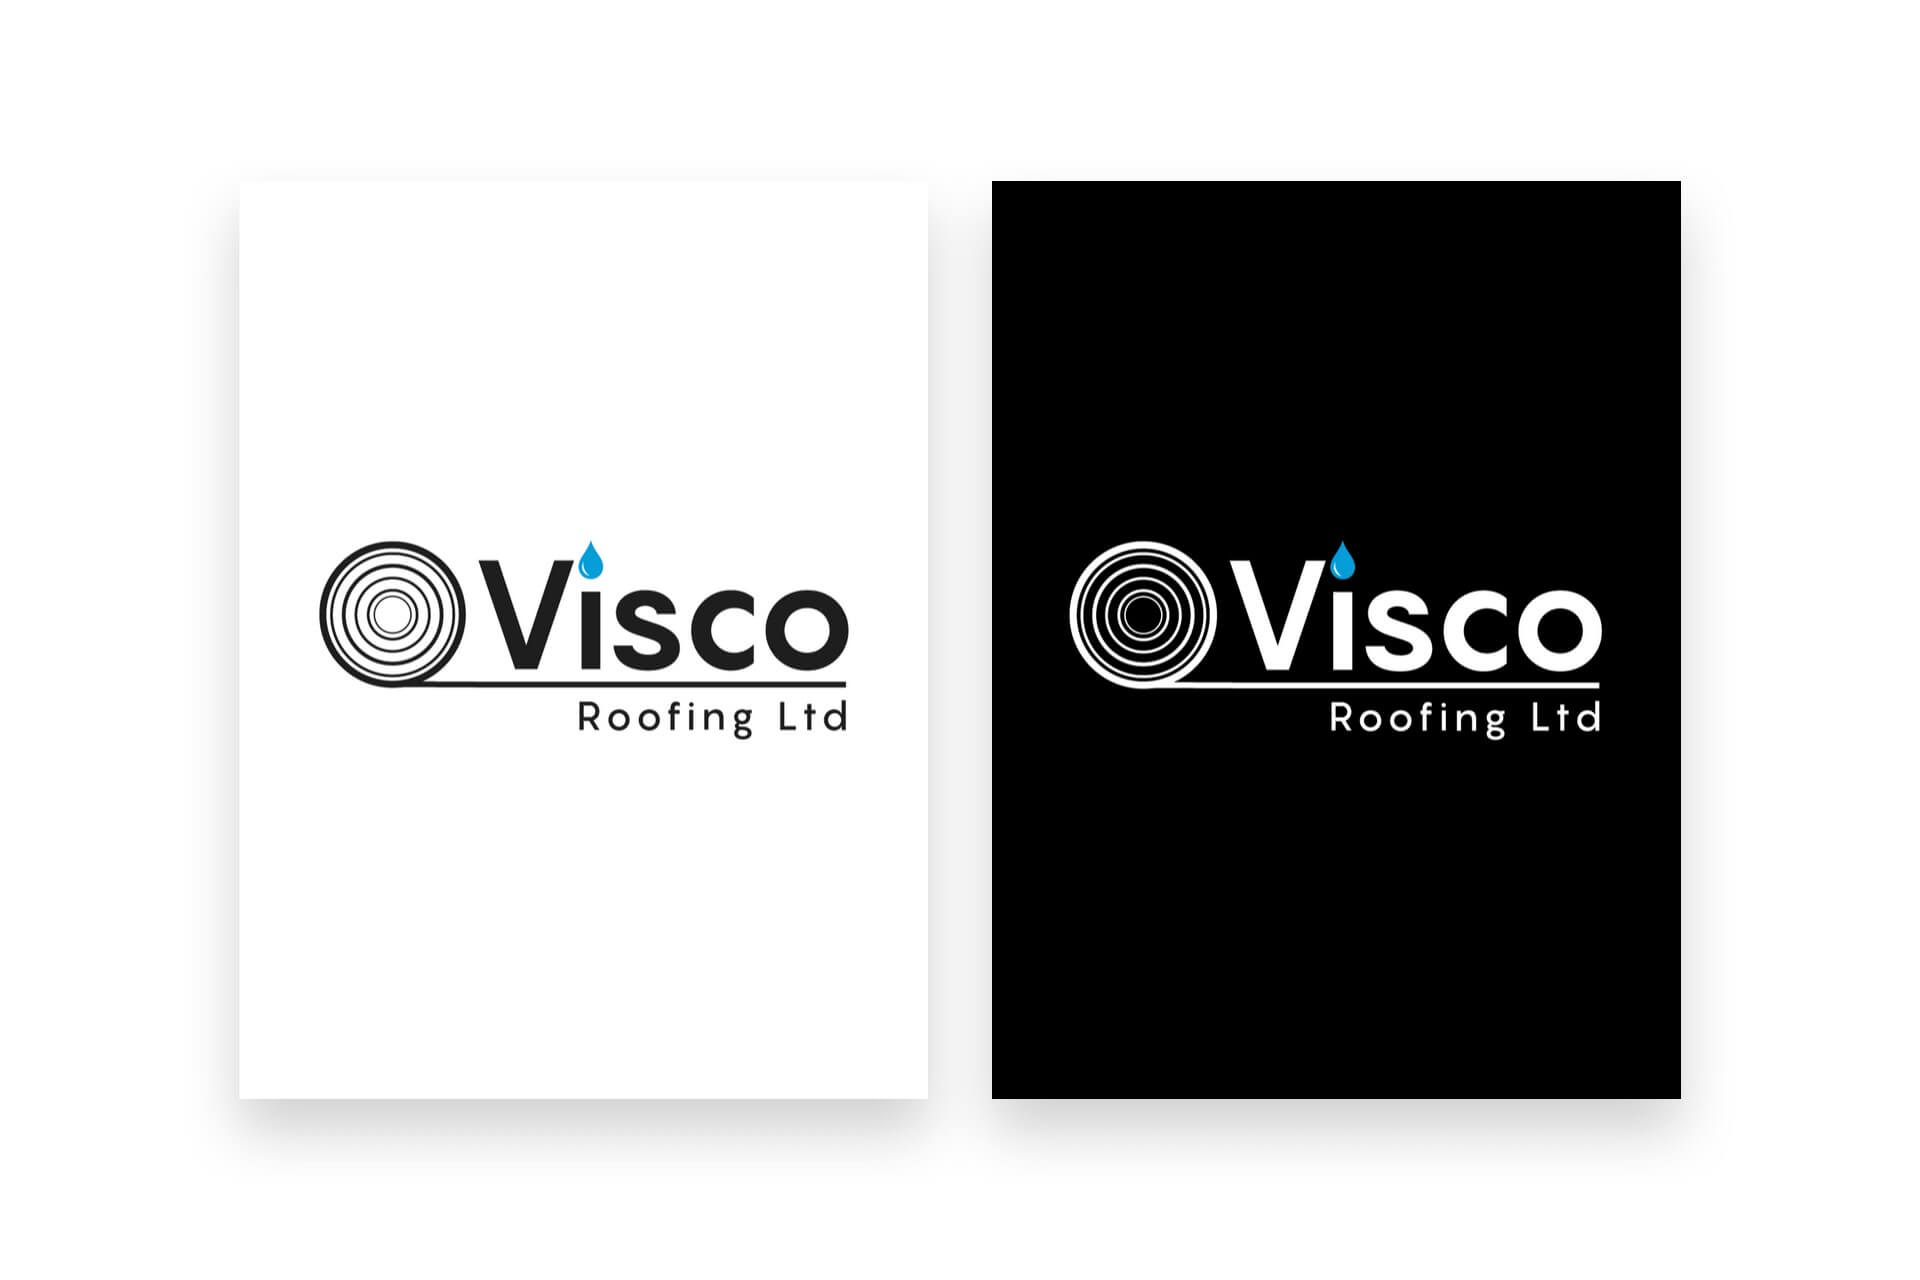 Visco Logo Design - Black & With Versions